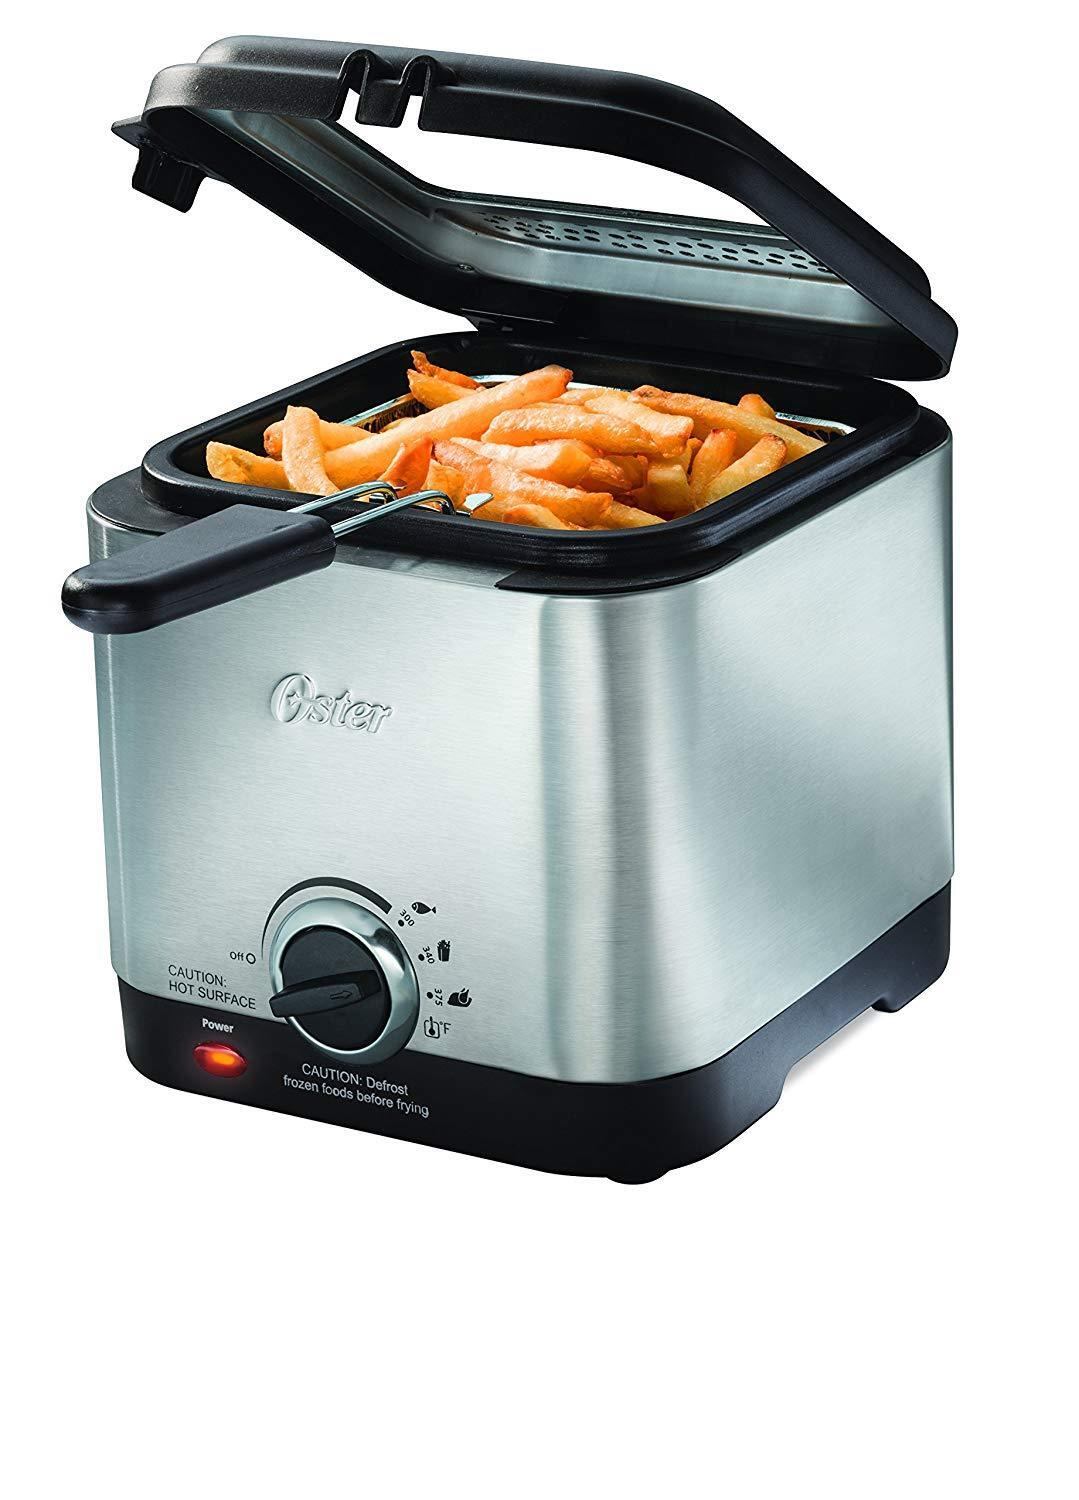 Oster Deep Fryer Stainless Steel Compact Small Mini Electric